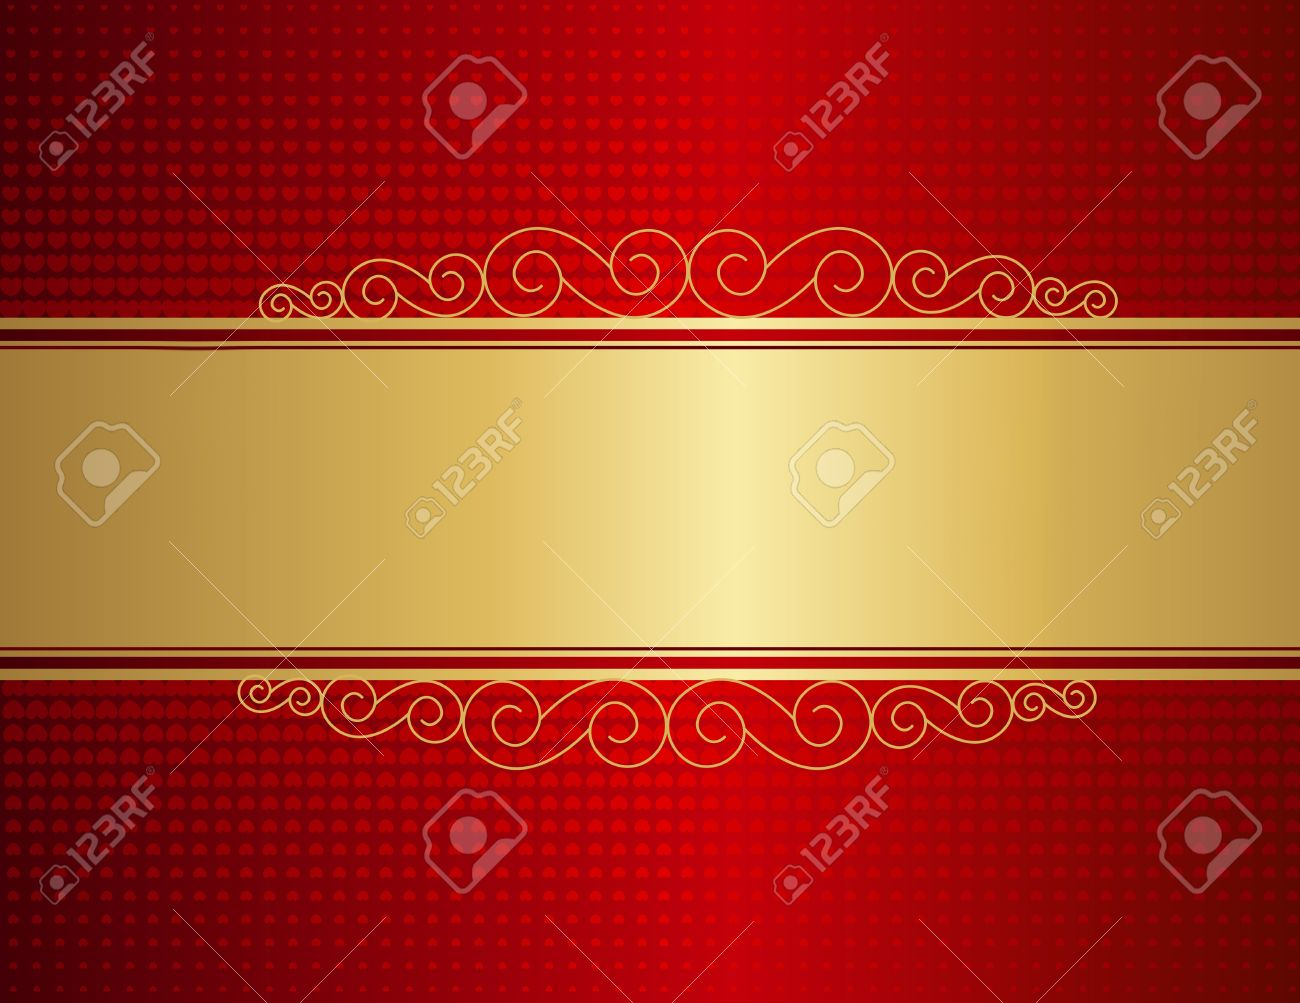 Anniversary background in red and golden color Vector Free Download